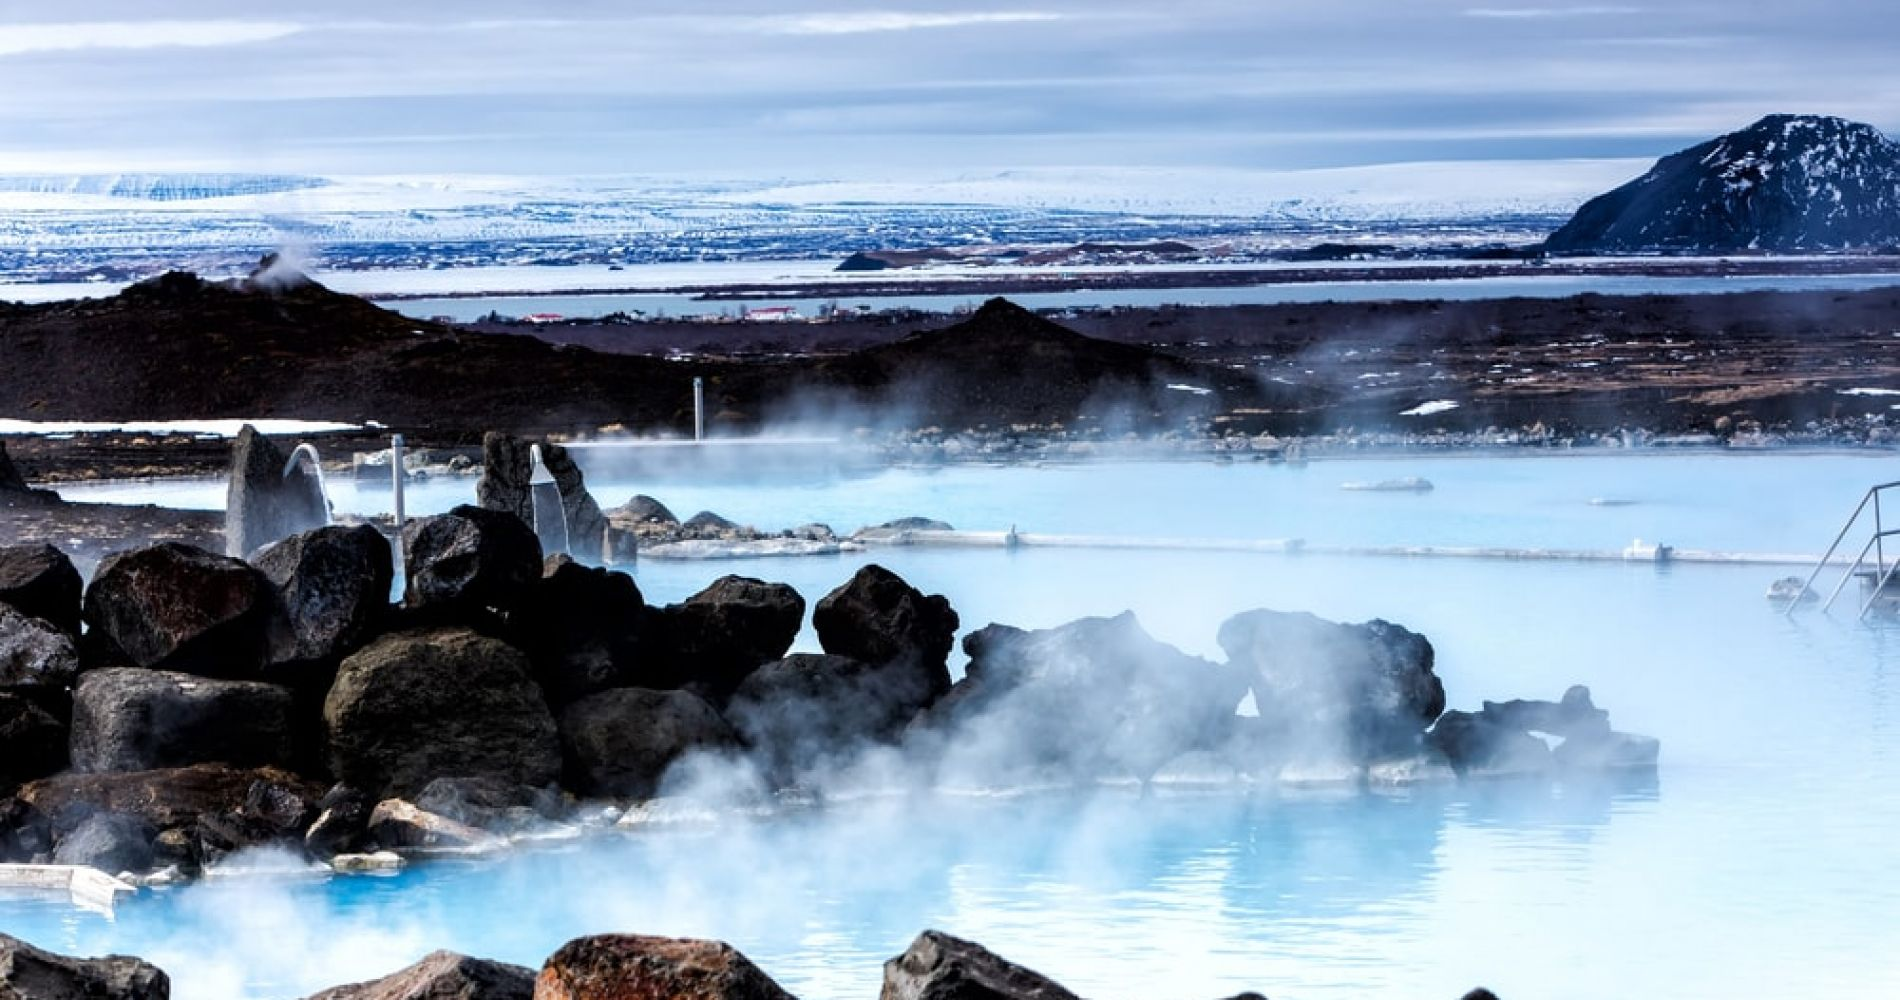 Myvatn Nature Baths Entrance Ticket for Two in Iceland